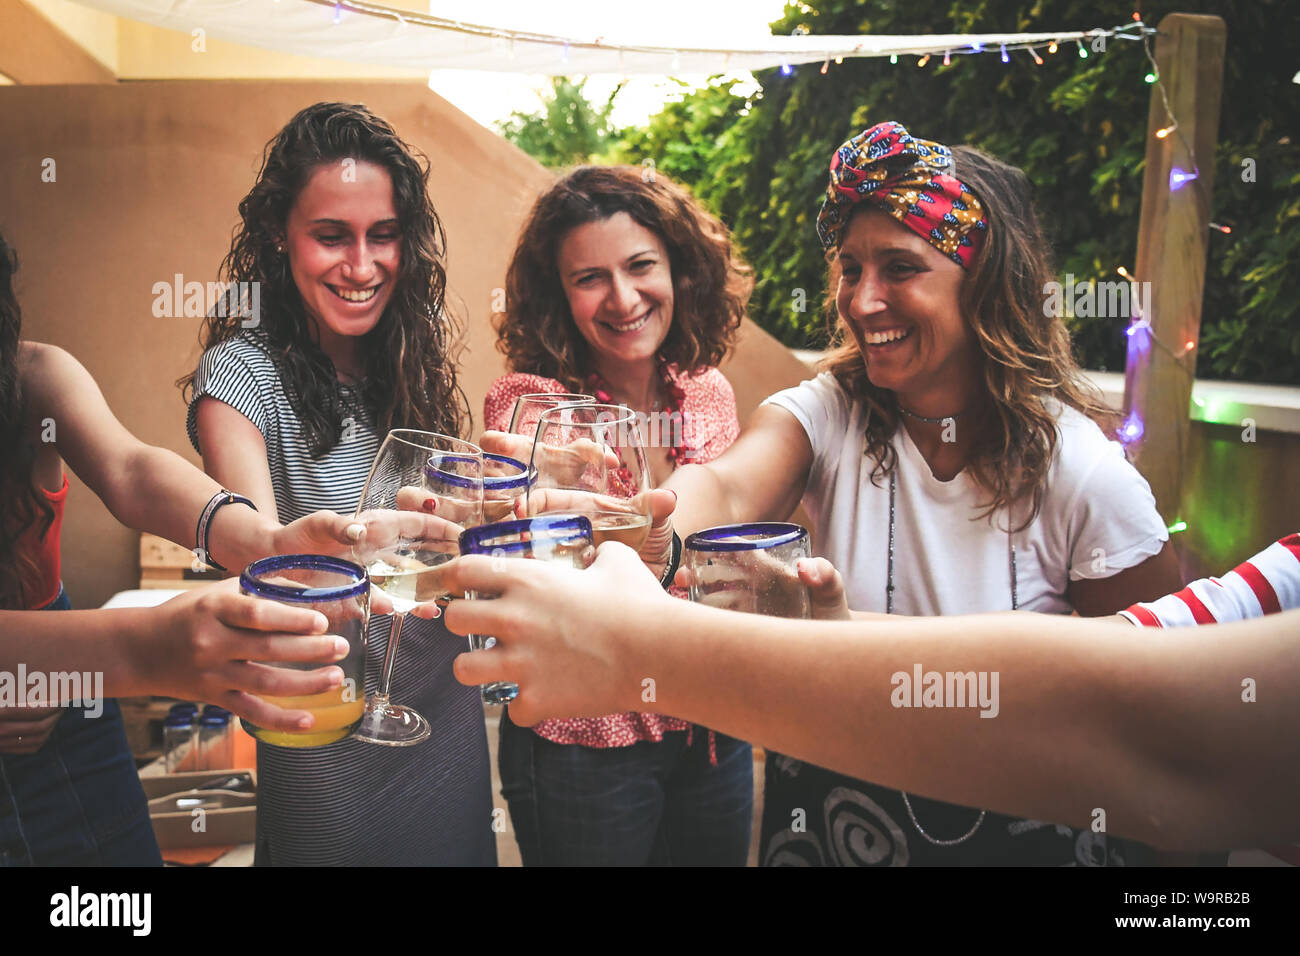 Group of happy friends cheering with glasses at dinner outdoor in terrace. Teenager and mothers having fun while drinking and eating. Focus on glasses Stock Photo